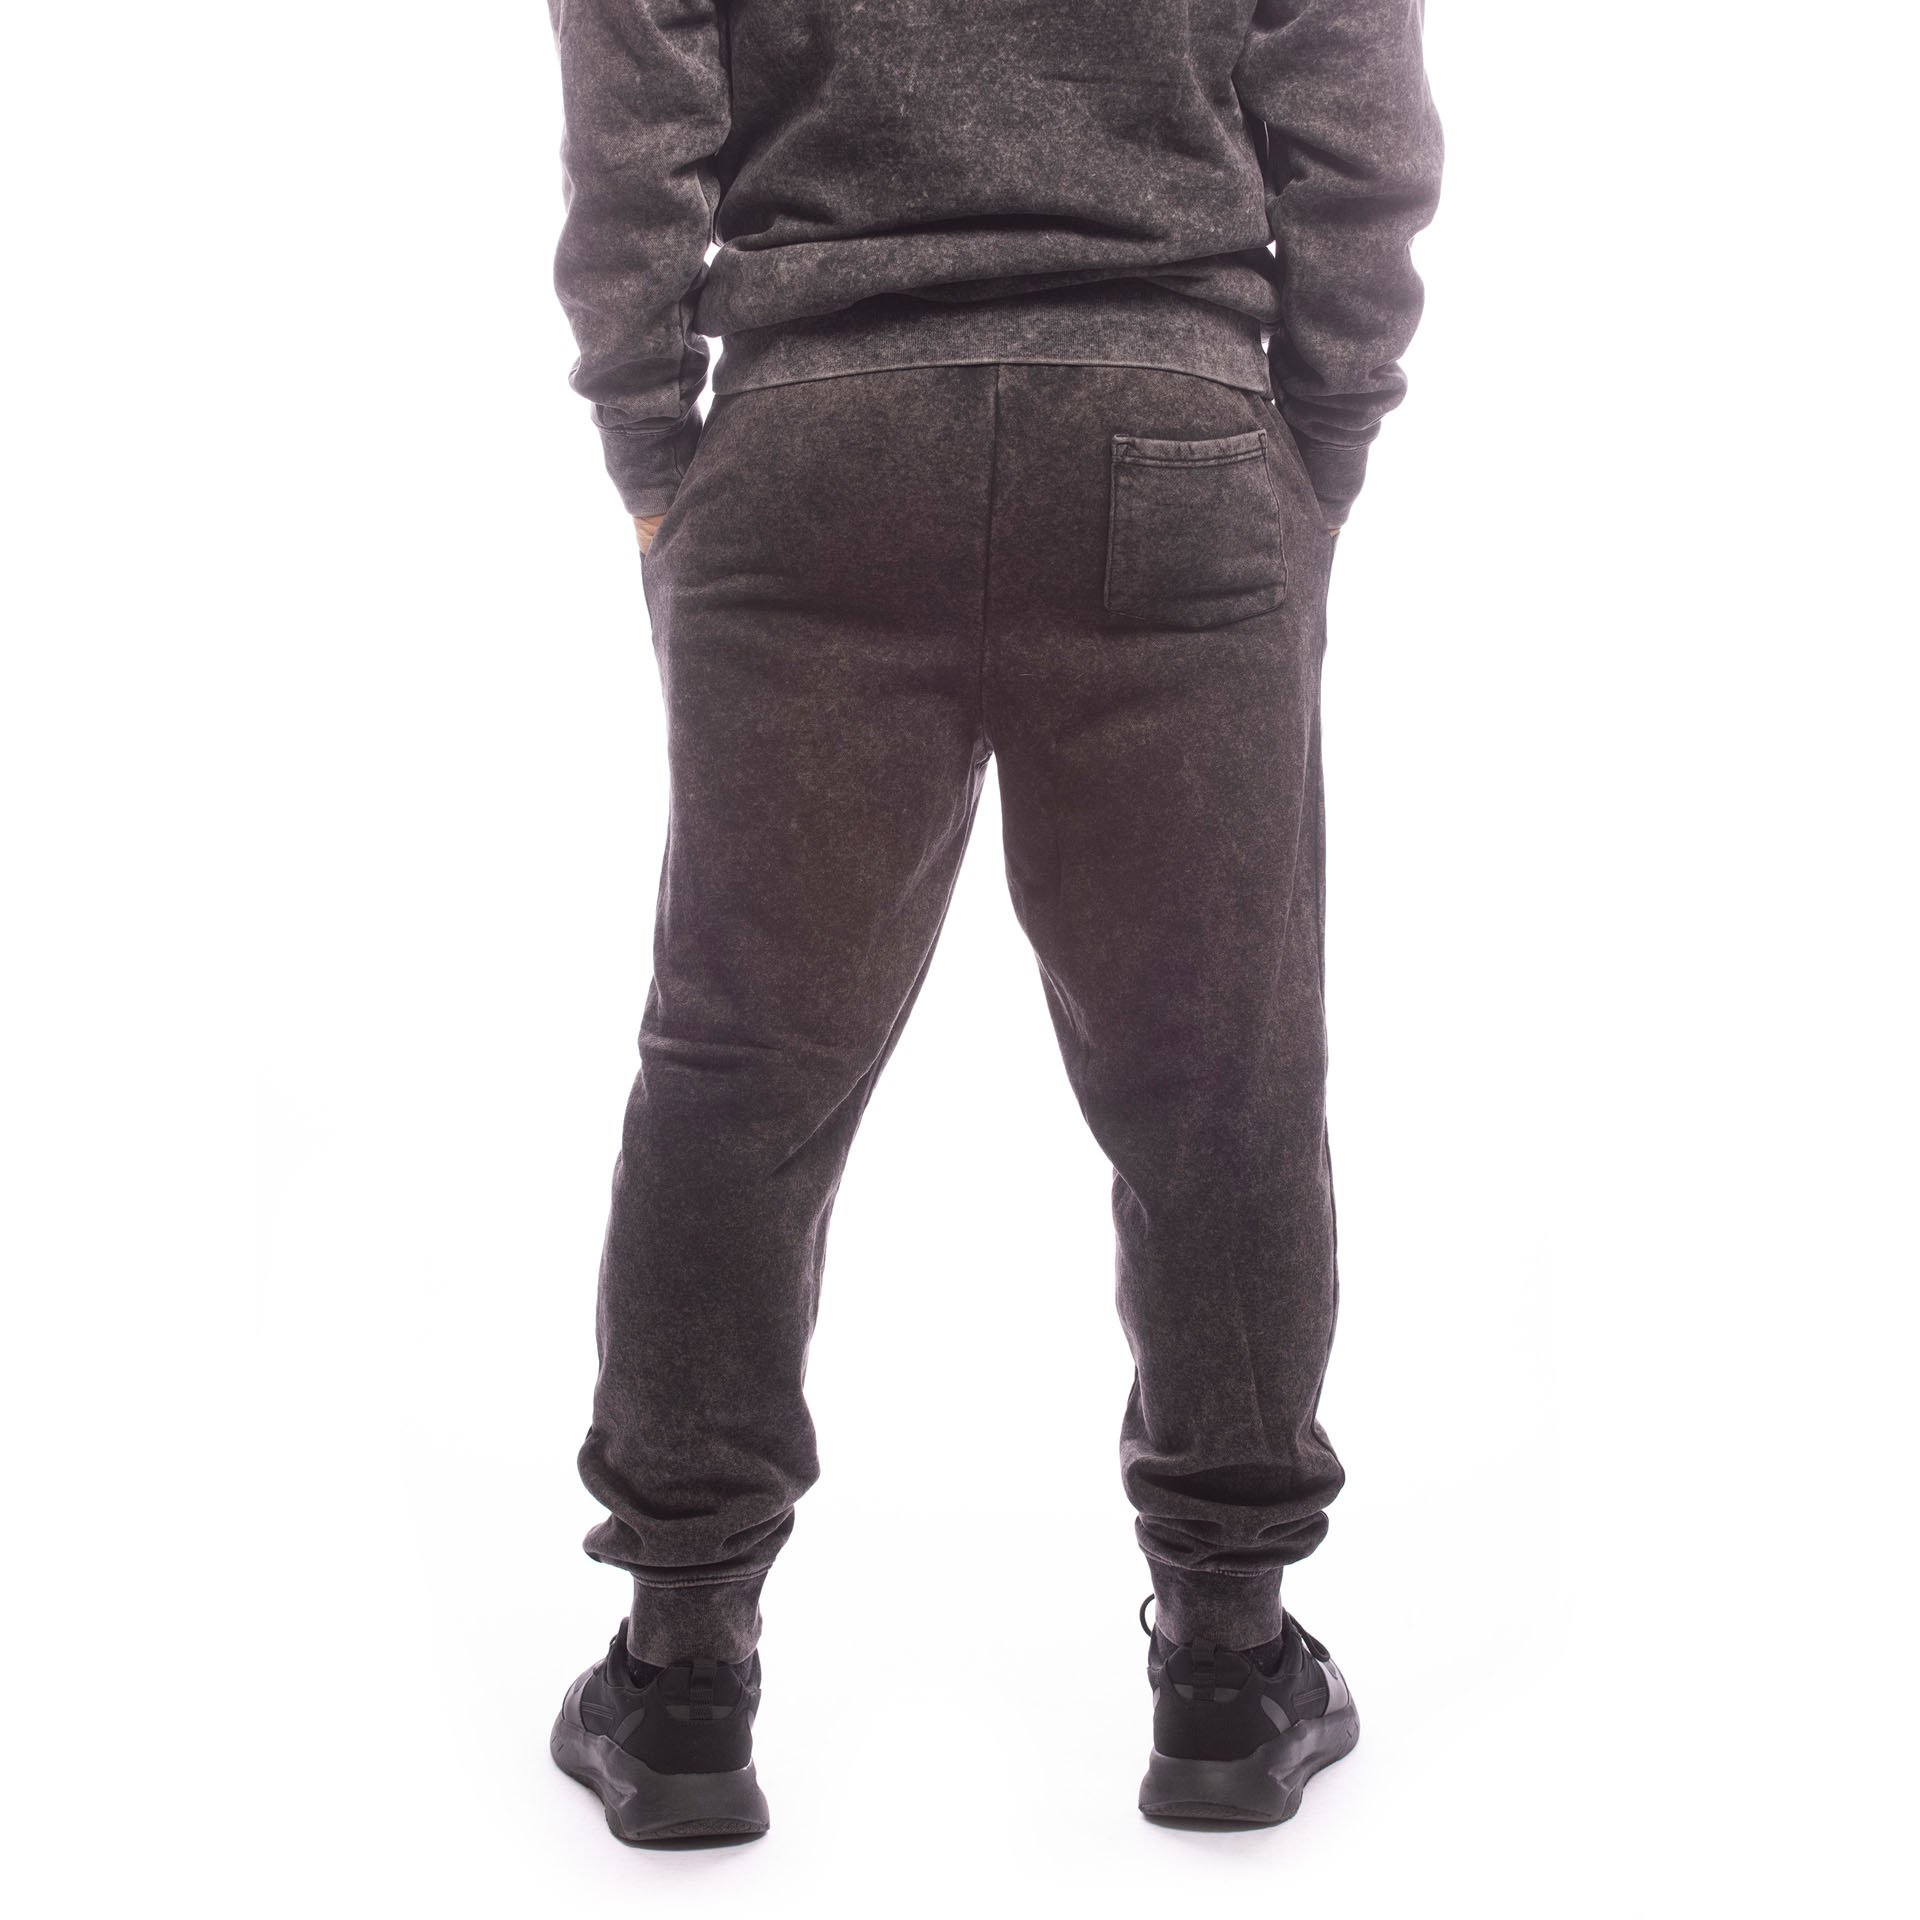 Unisex Upcycled Jogger - Made For The People - Mineral Wash